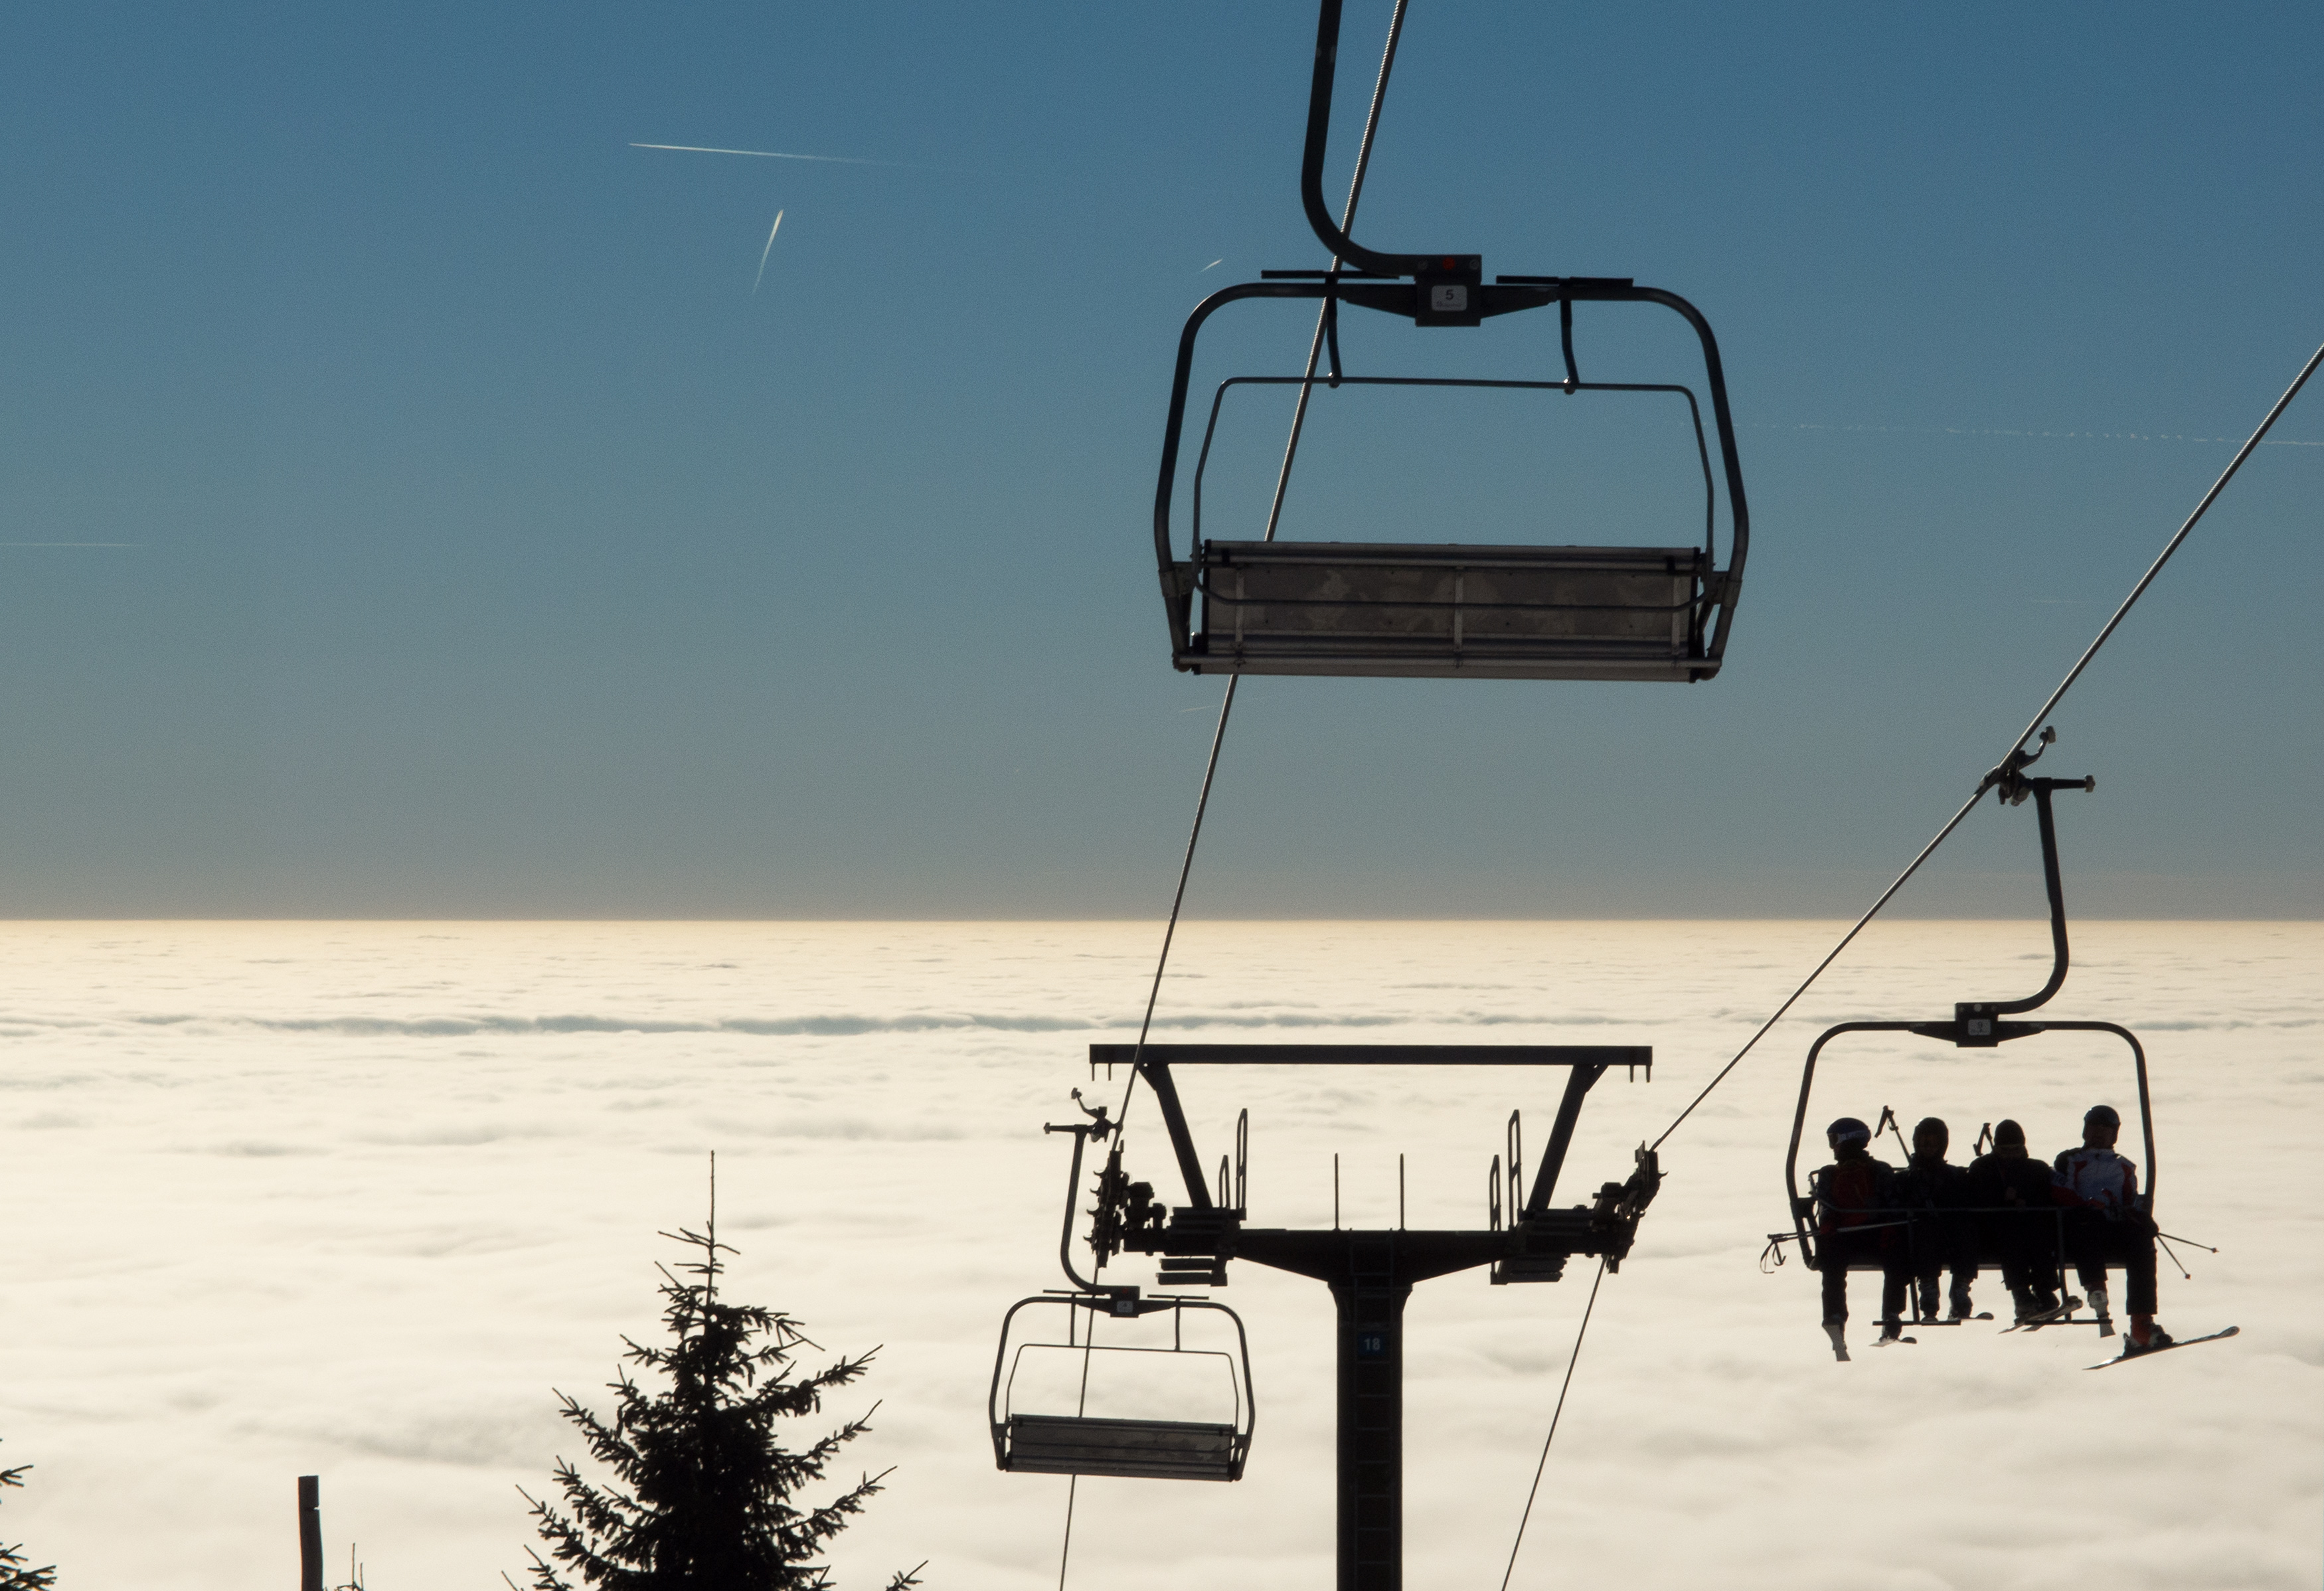 buy ski lift chair folding hooks free image skiers on a chairlift libreshot public